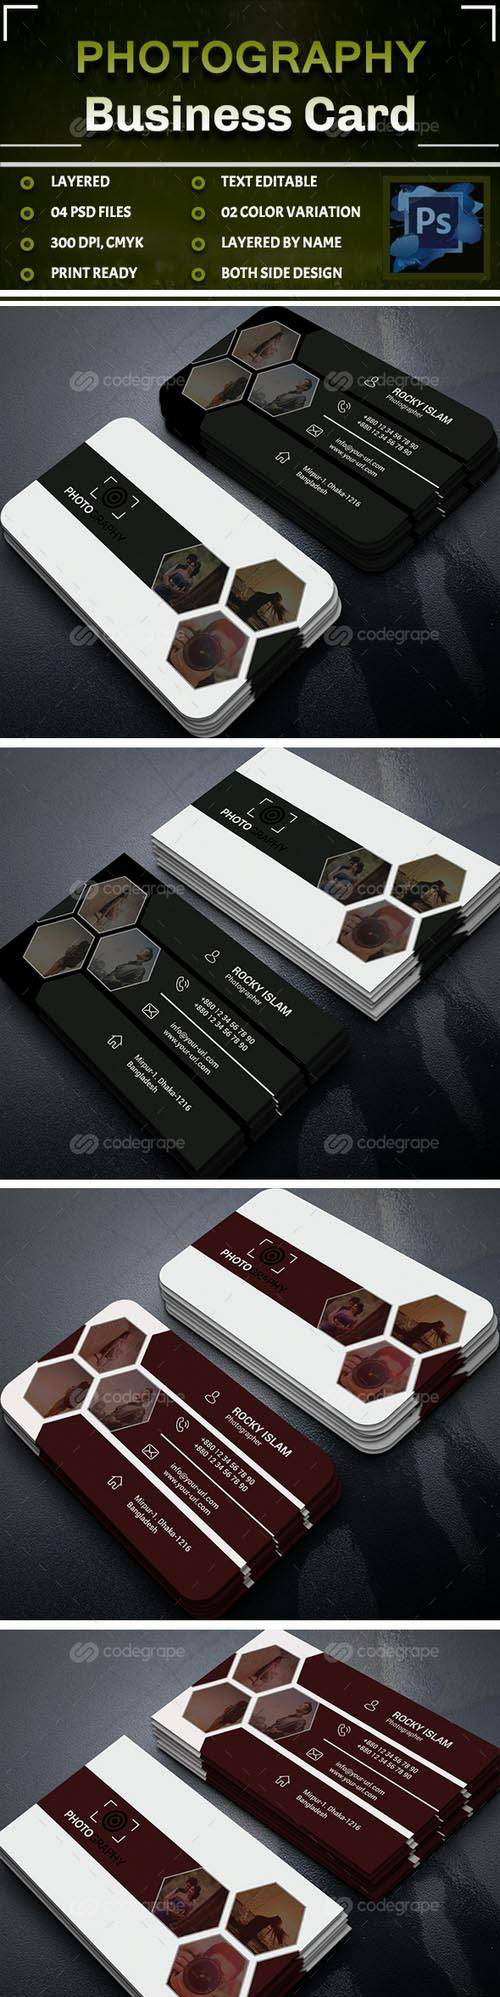 CodeGrape - Photography Business Card 11233